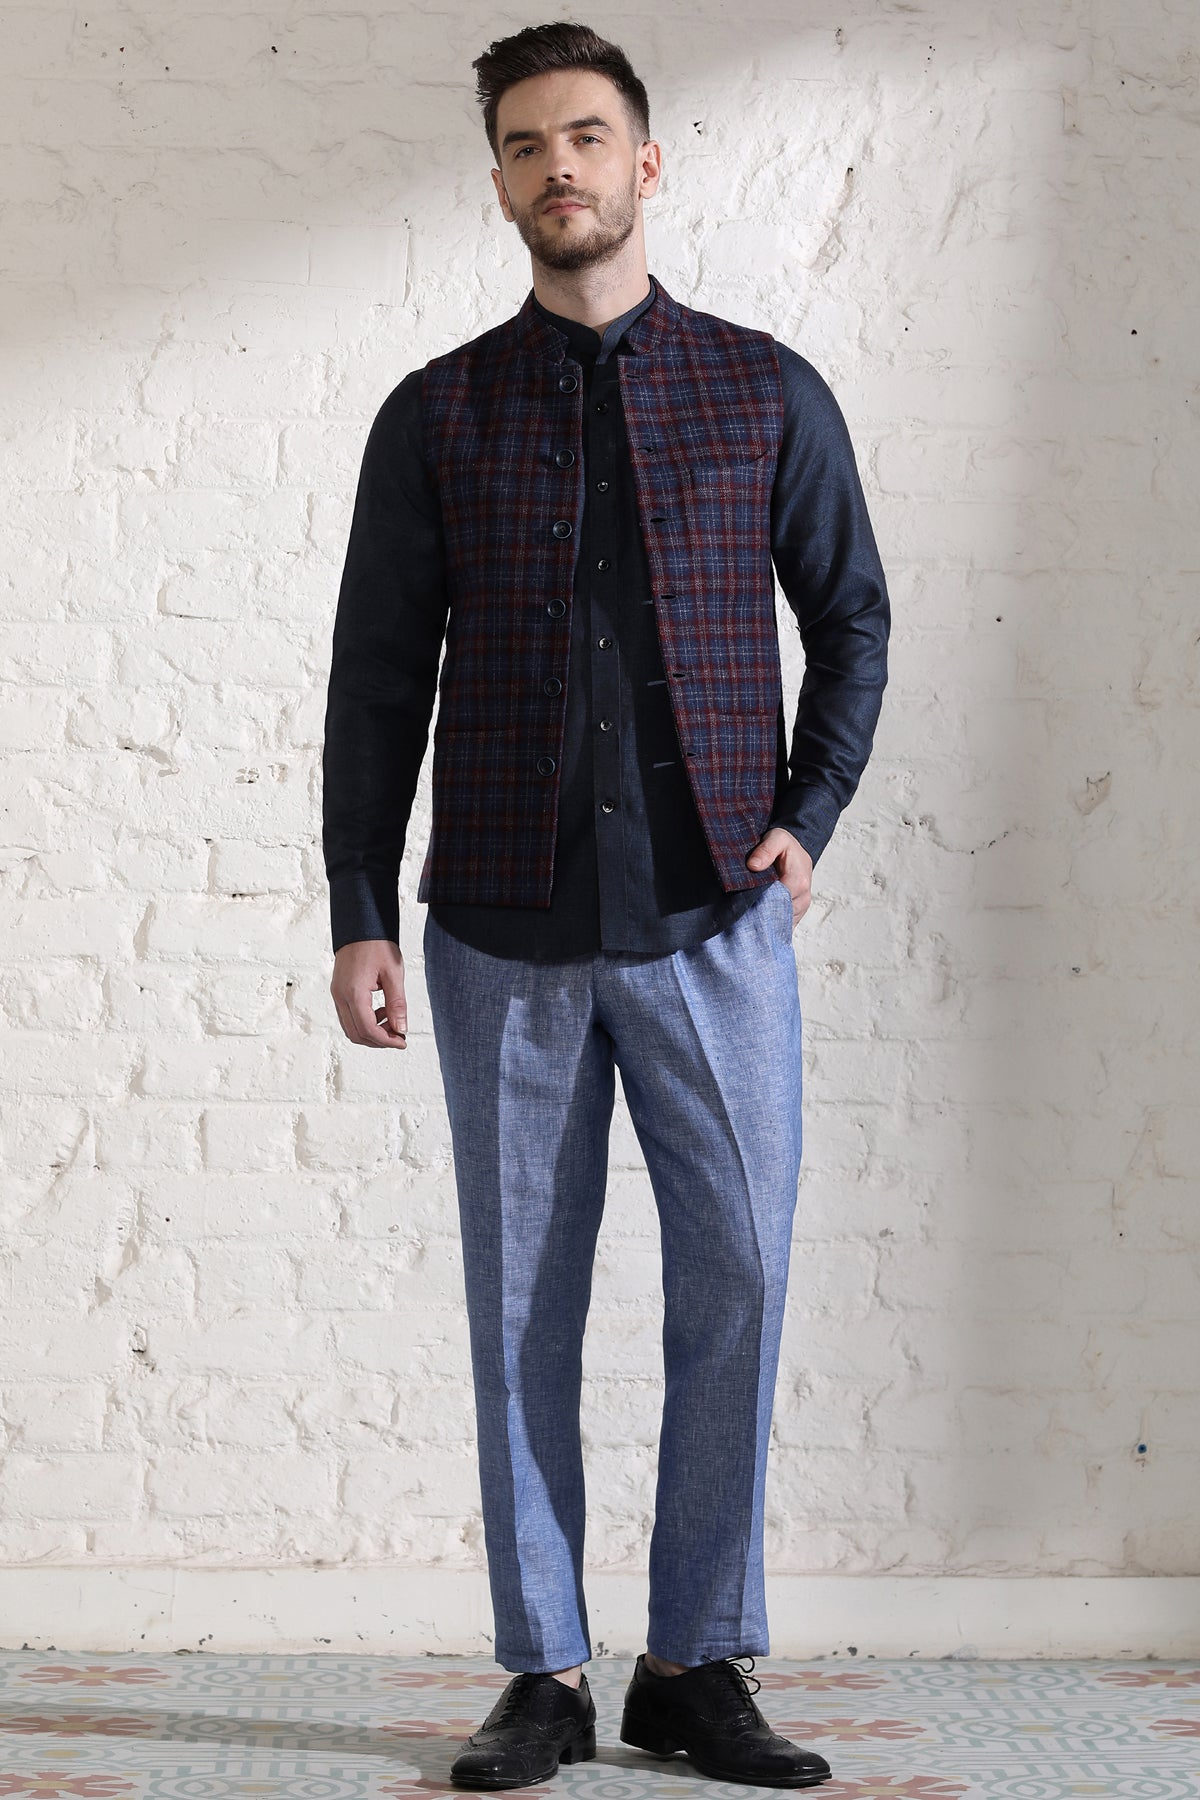 The Twilight Nehru Jacket